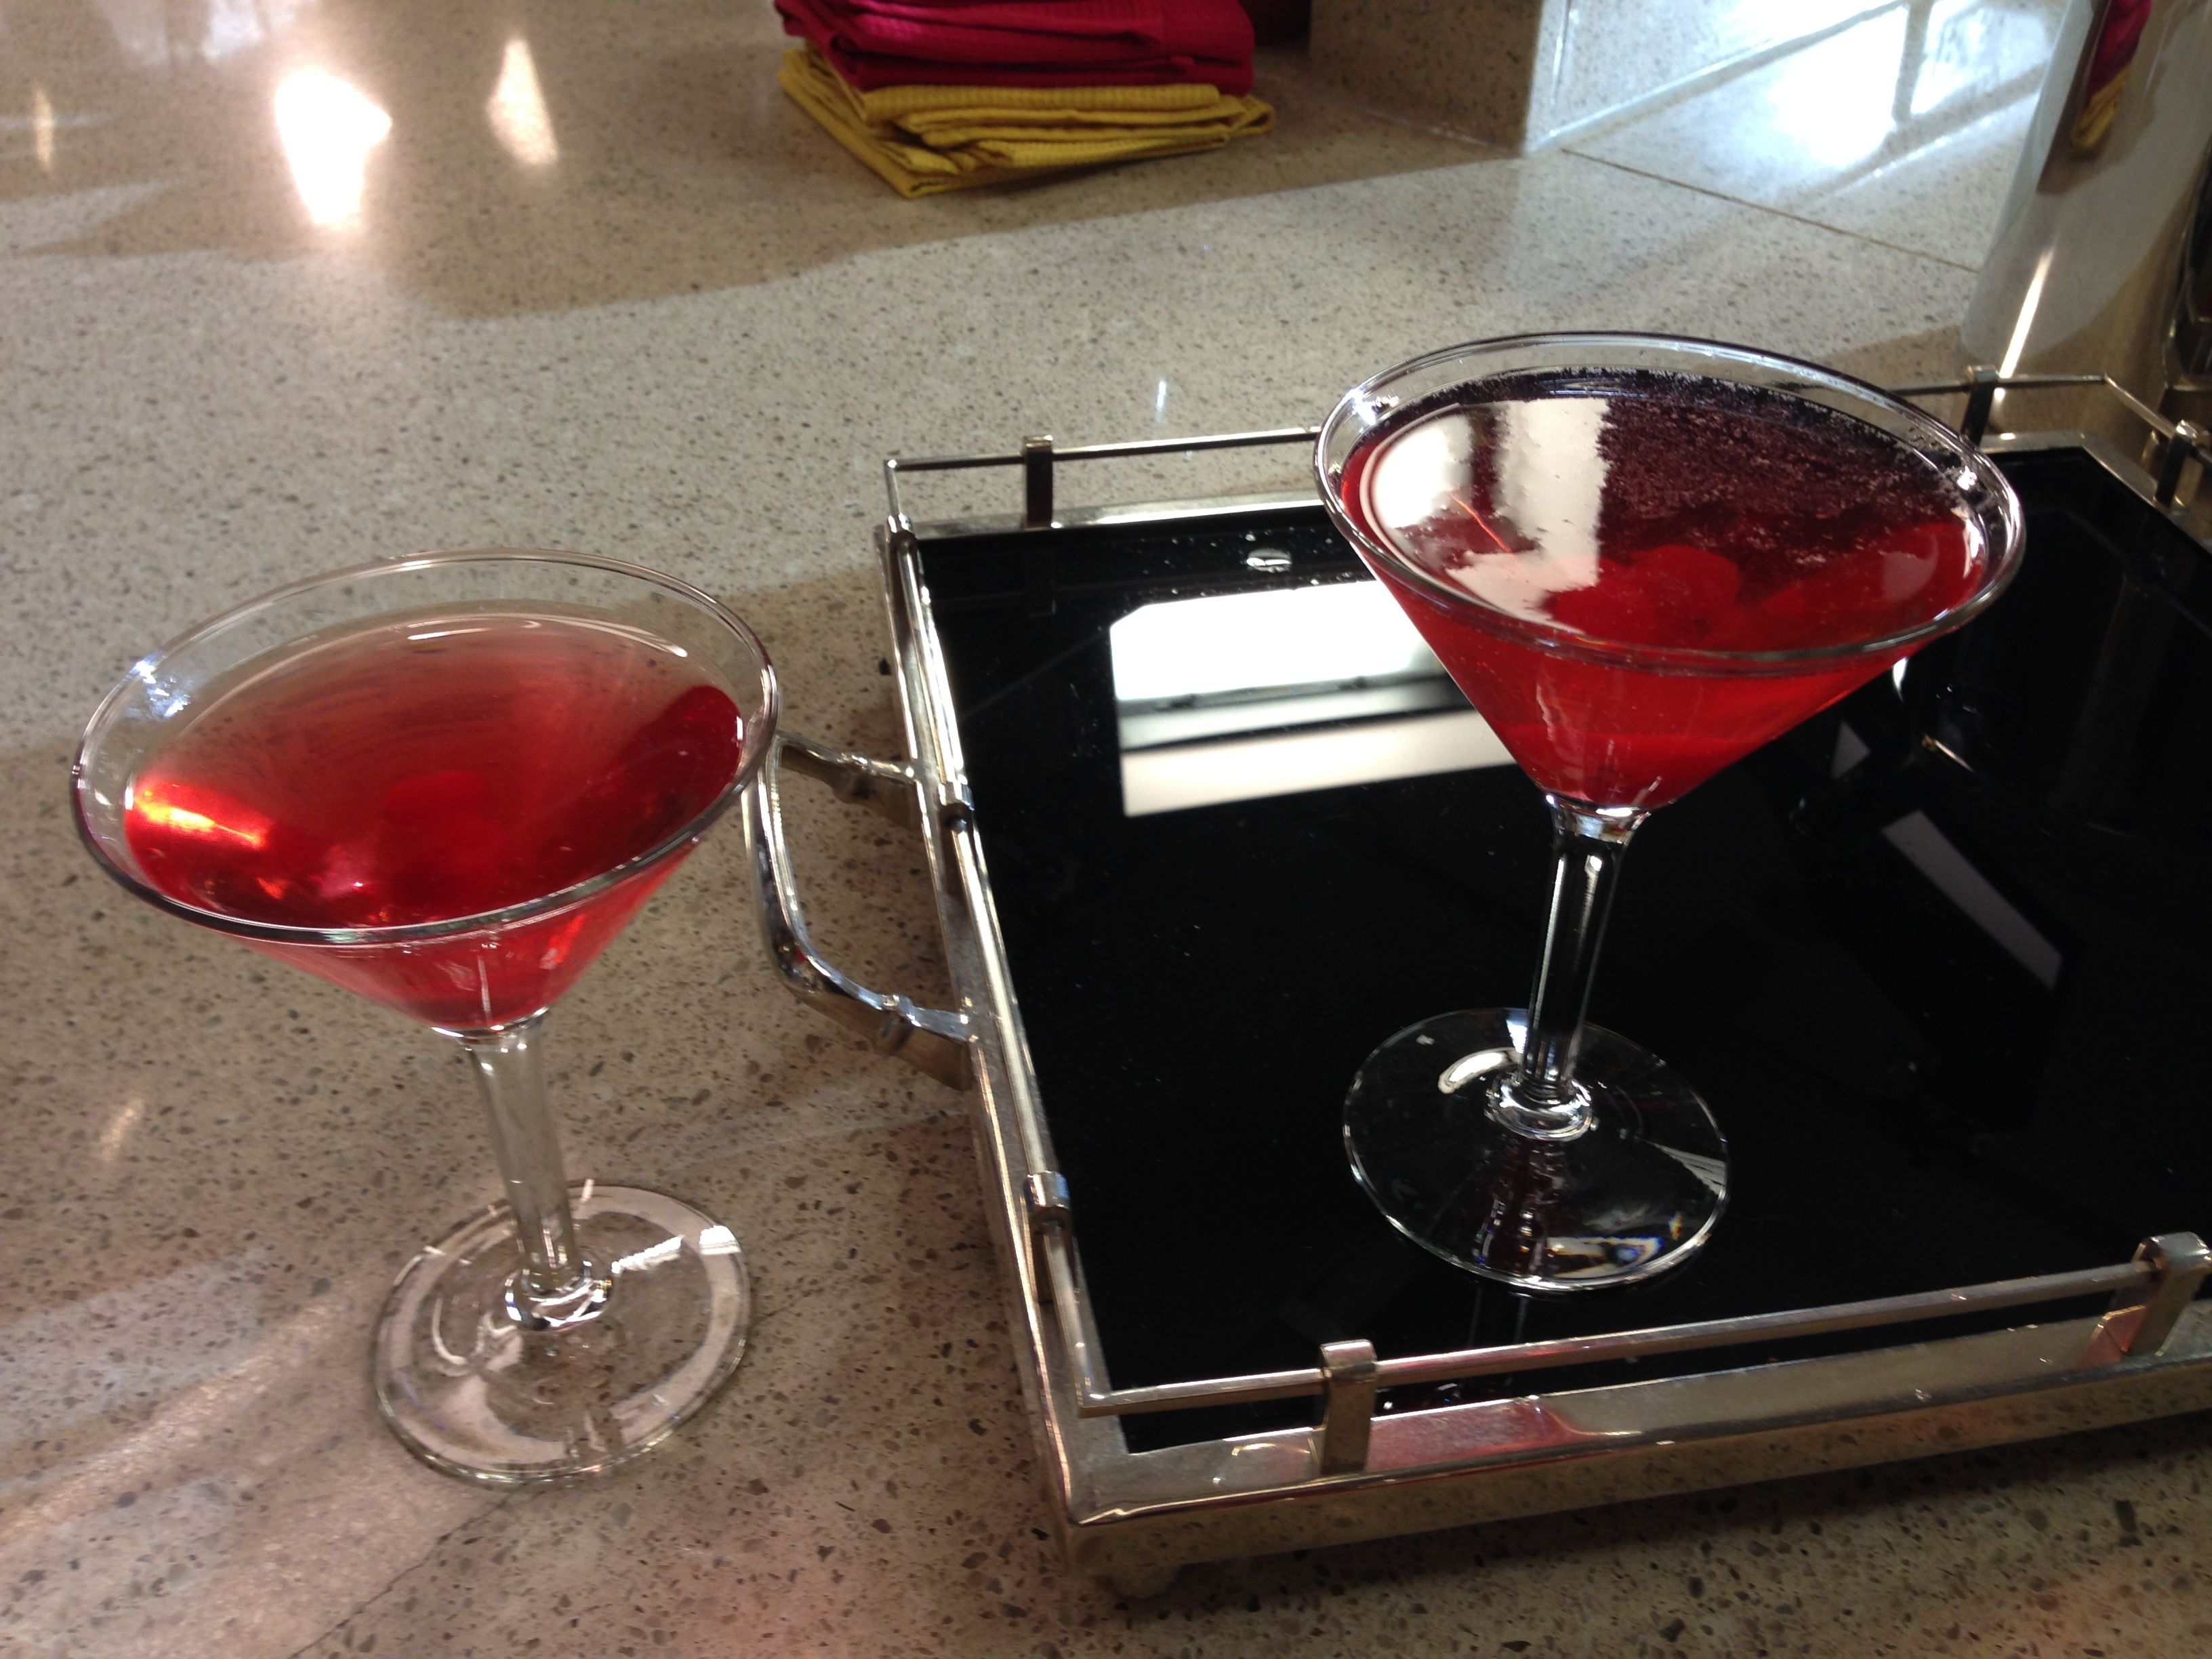 Bobby's mixing up his Spanish Cranberry Sparkling Martini for Turkey Day. #ThanksgivingLive http://www.foodnetwork.com/recipes/bobby-flay/spanish-cranberry-sparkling-martini-recipe/index.html?soc=thanksgivinglivepinterest